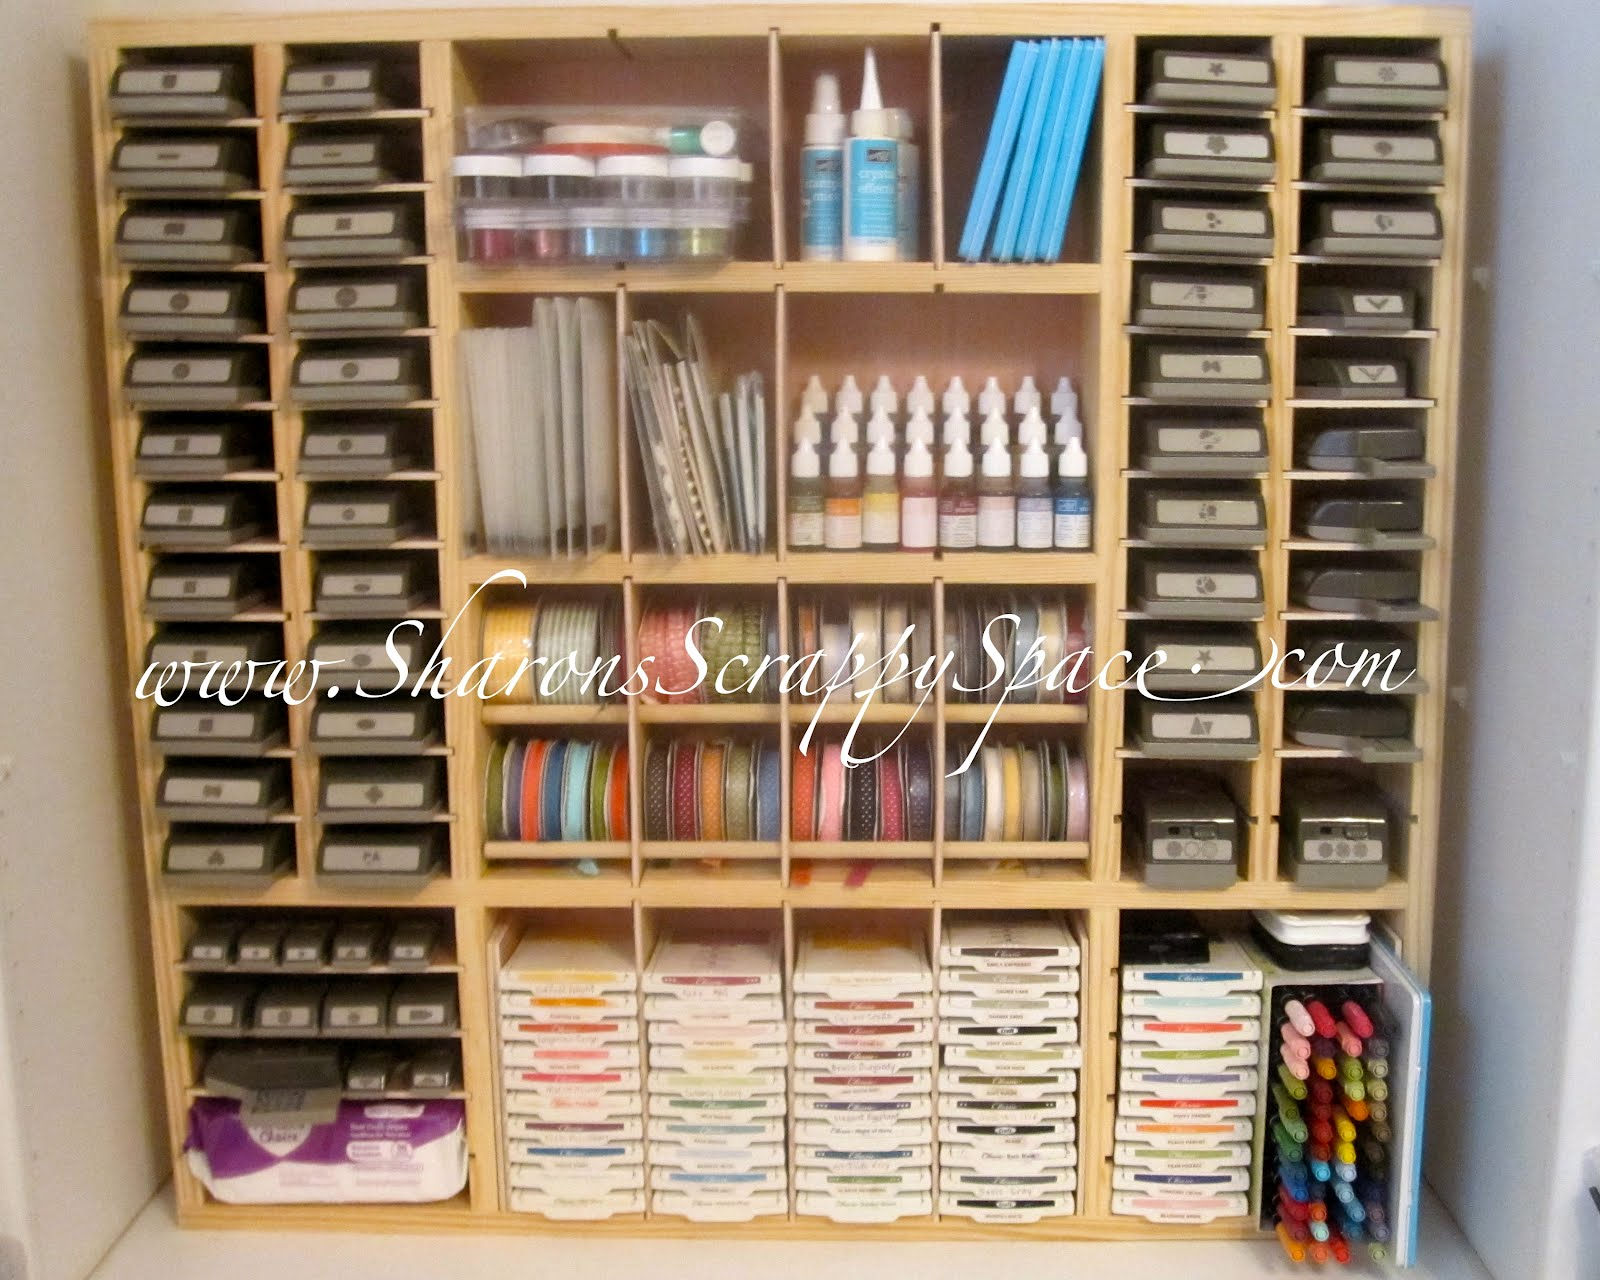 Stampin Up Scrapbooking Storage